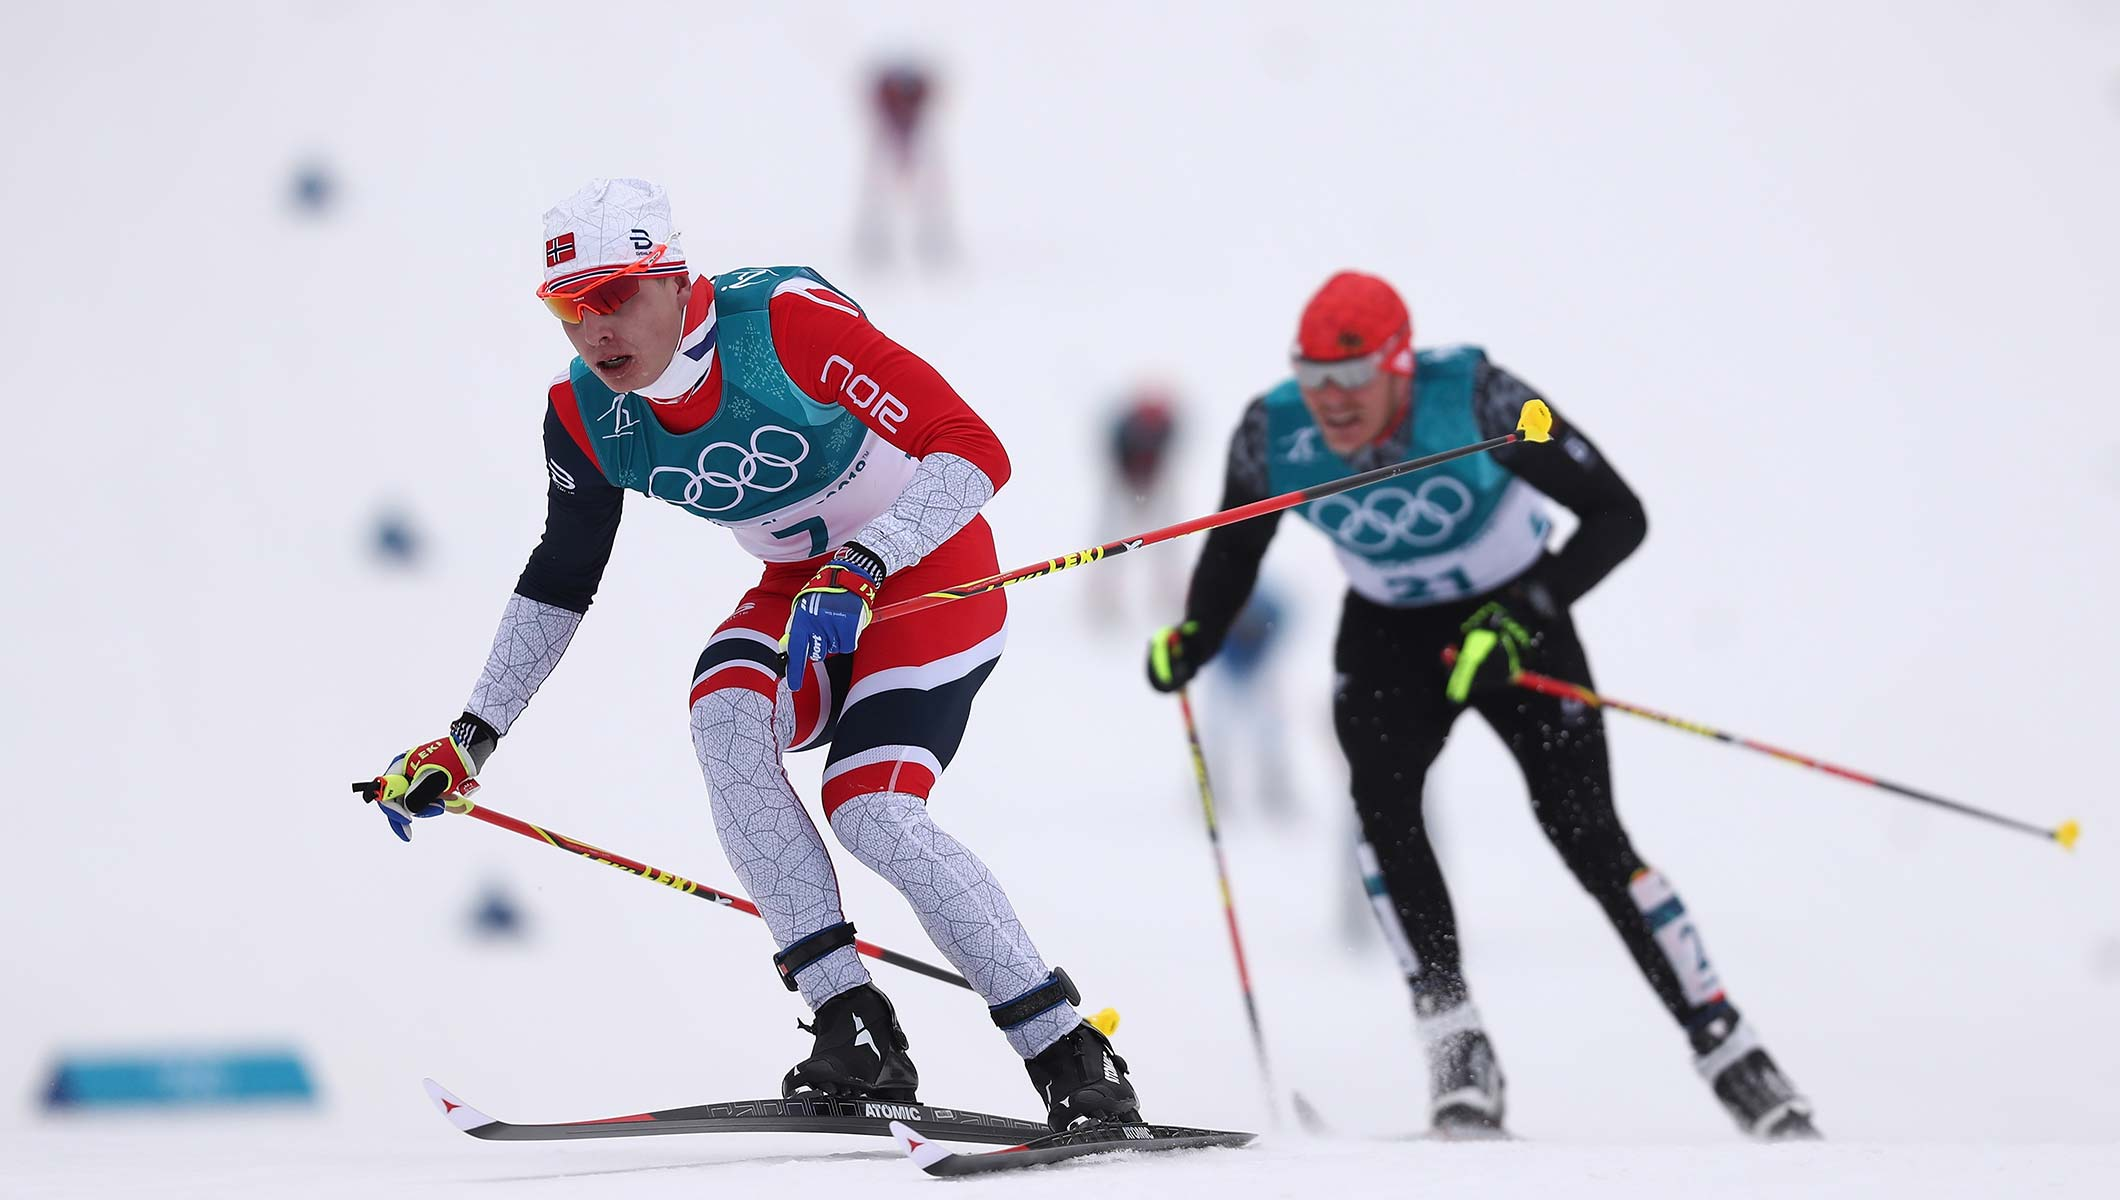 Cross Country Skiing At The 2020 Olympic Winter Games.Krueger Recovers From Fall To Lead Norway Skiathlon Sweep